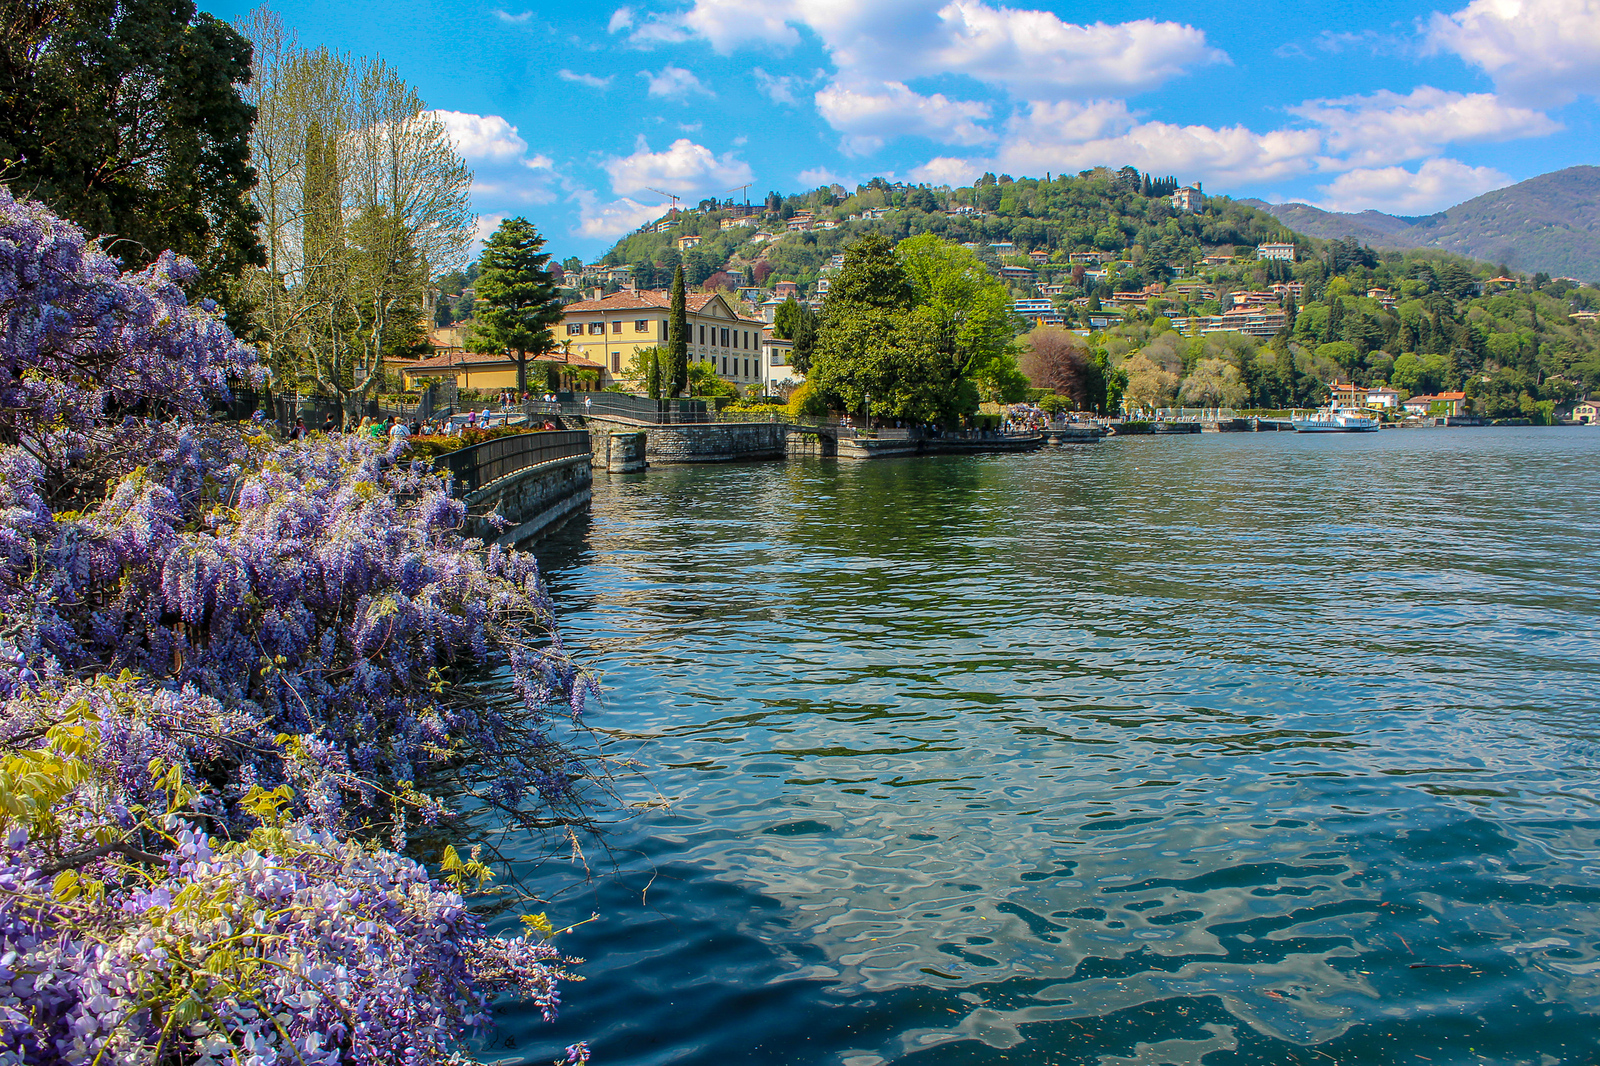 traveling alone in italy is a treat with it's lush flowers and lakes